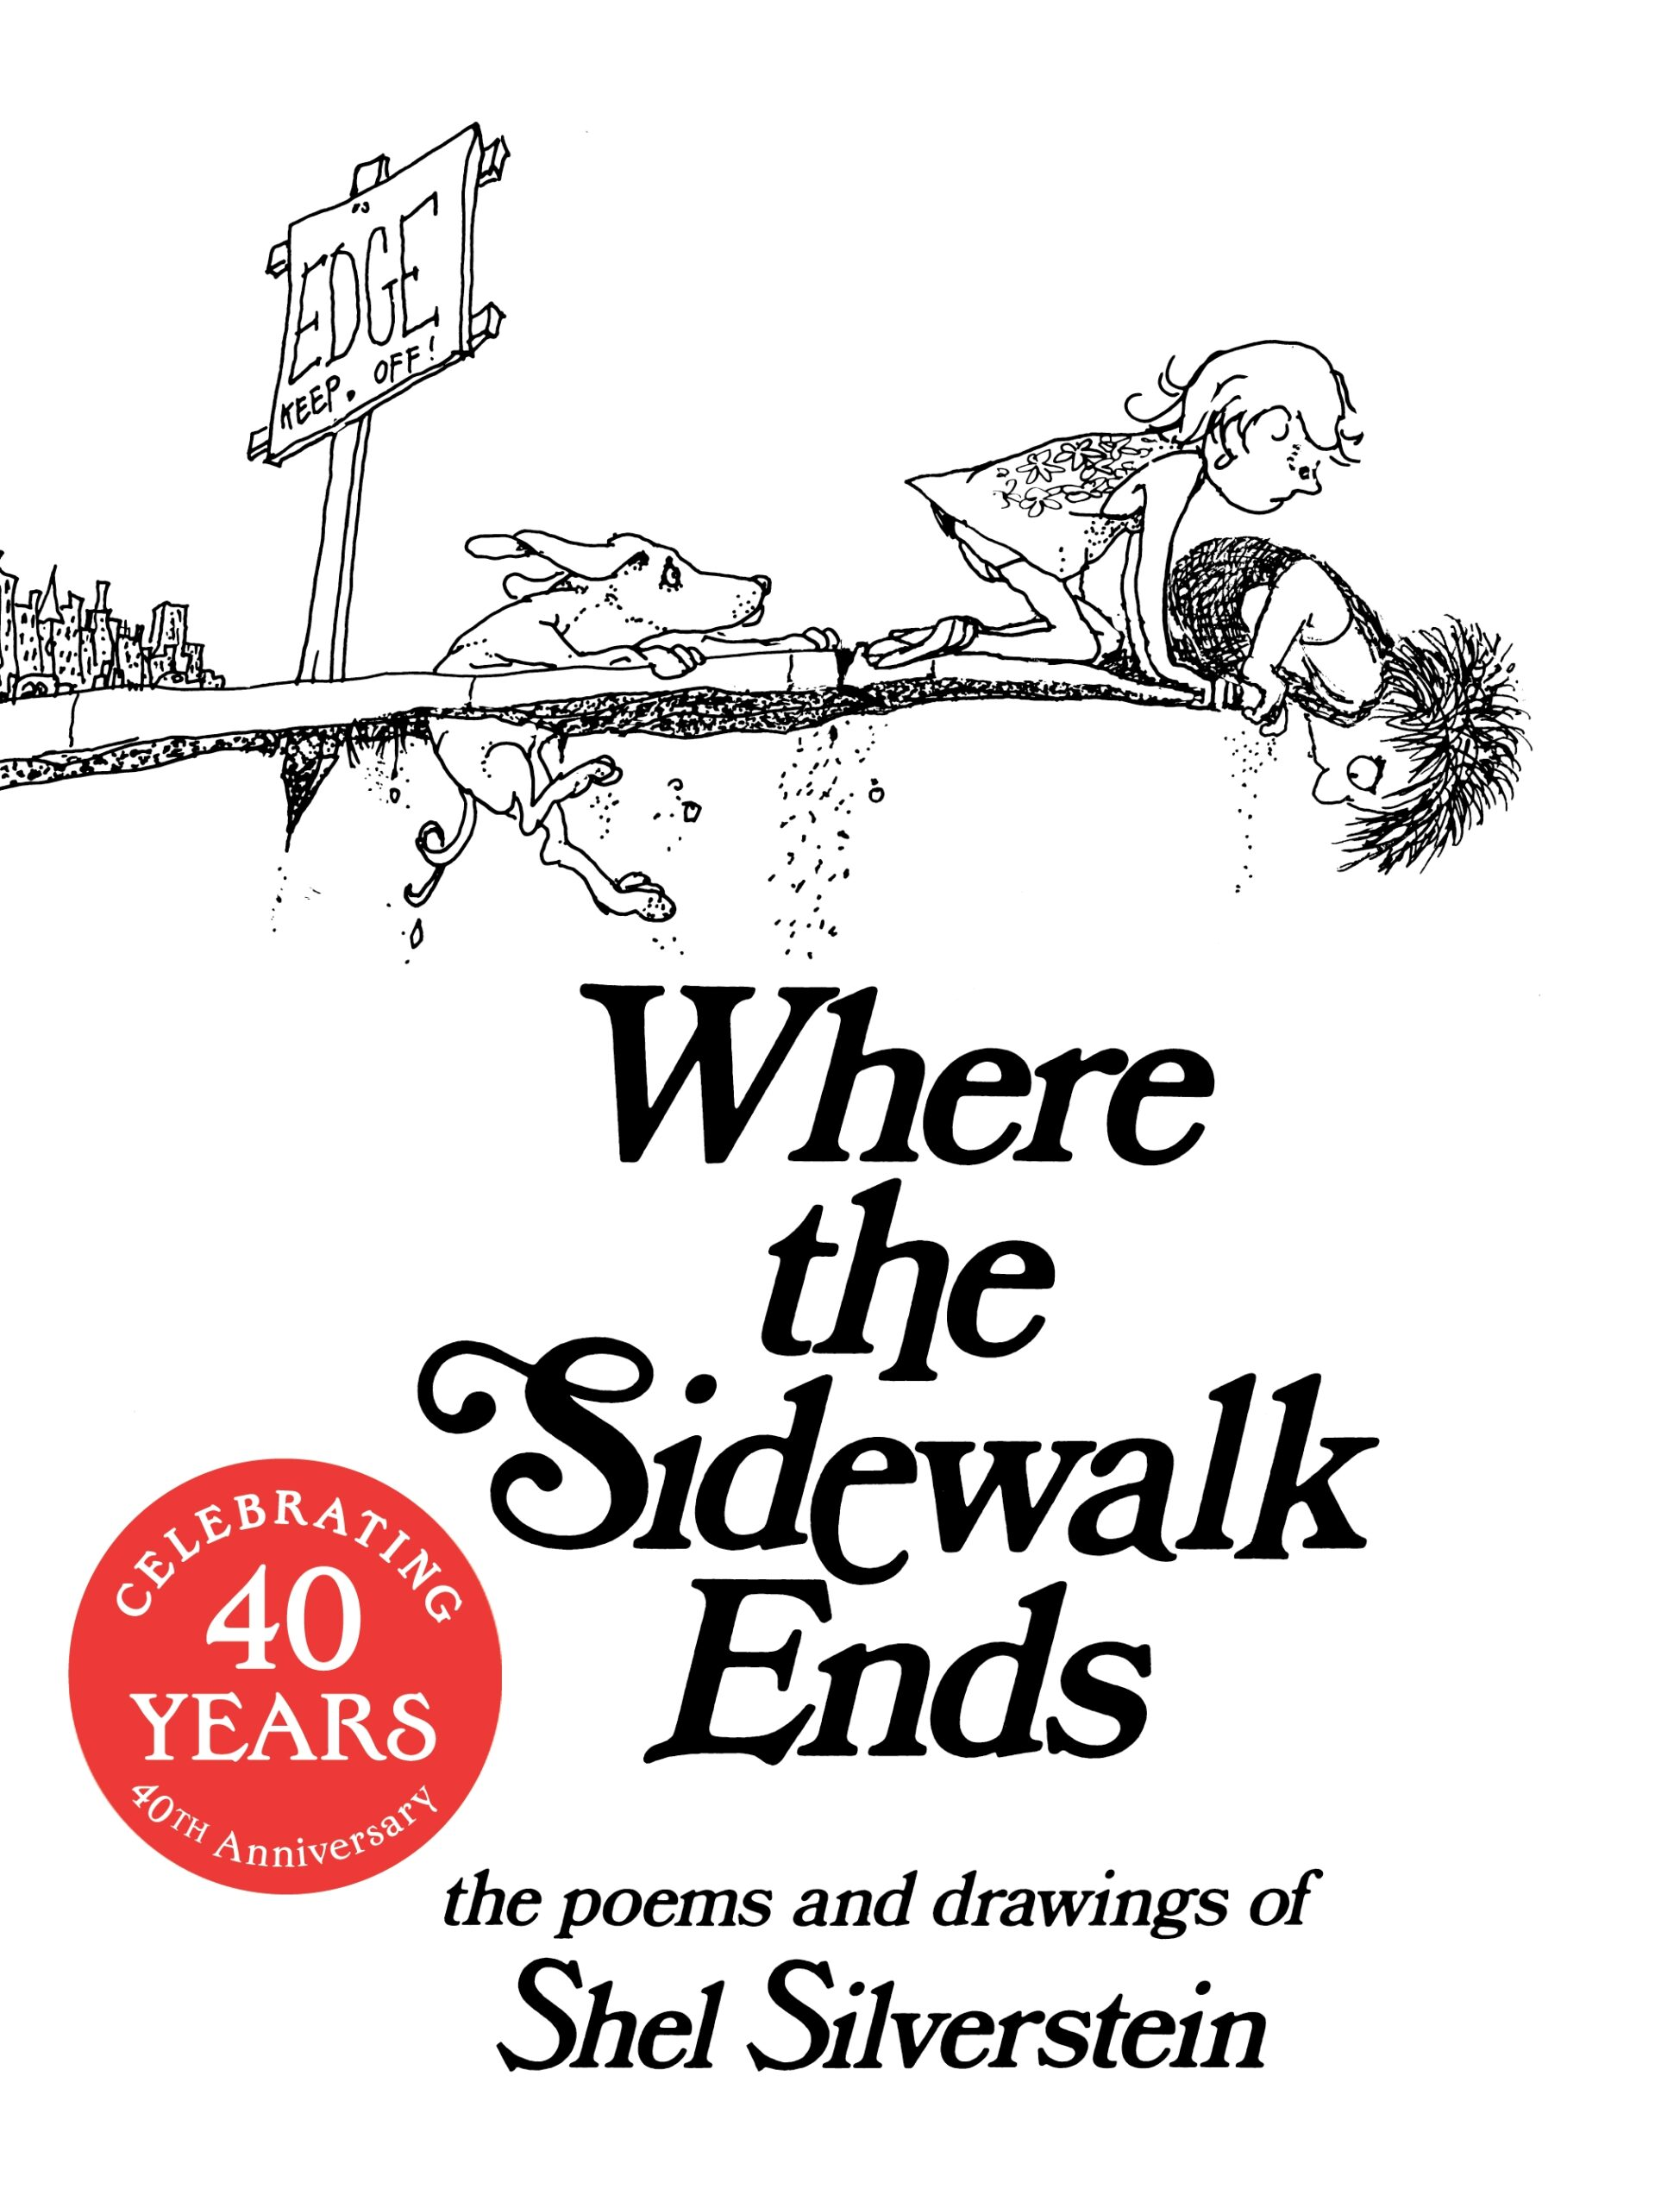 This is a picture of the cover of Where the Sidewalk Ends.